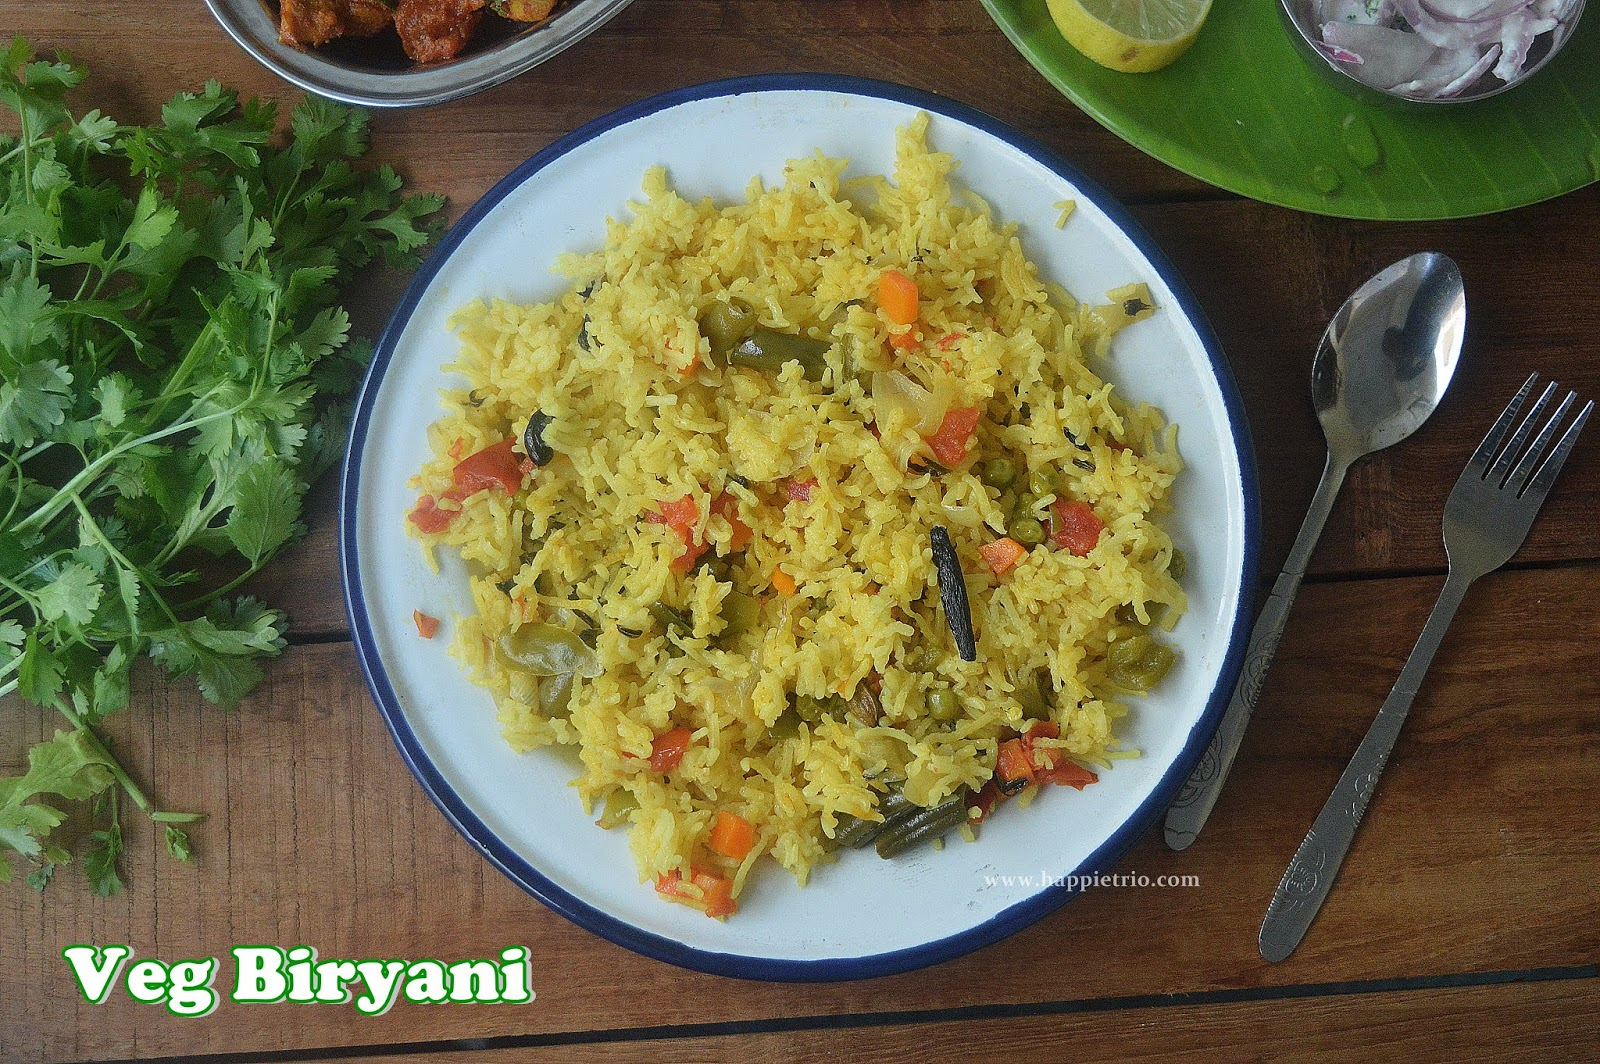 Vegetable Biryani Recipe | Simple Veg Biryani